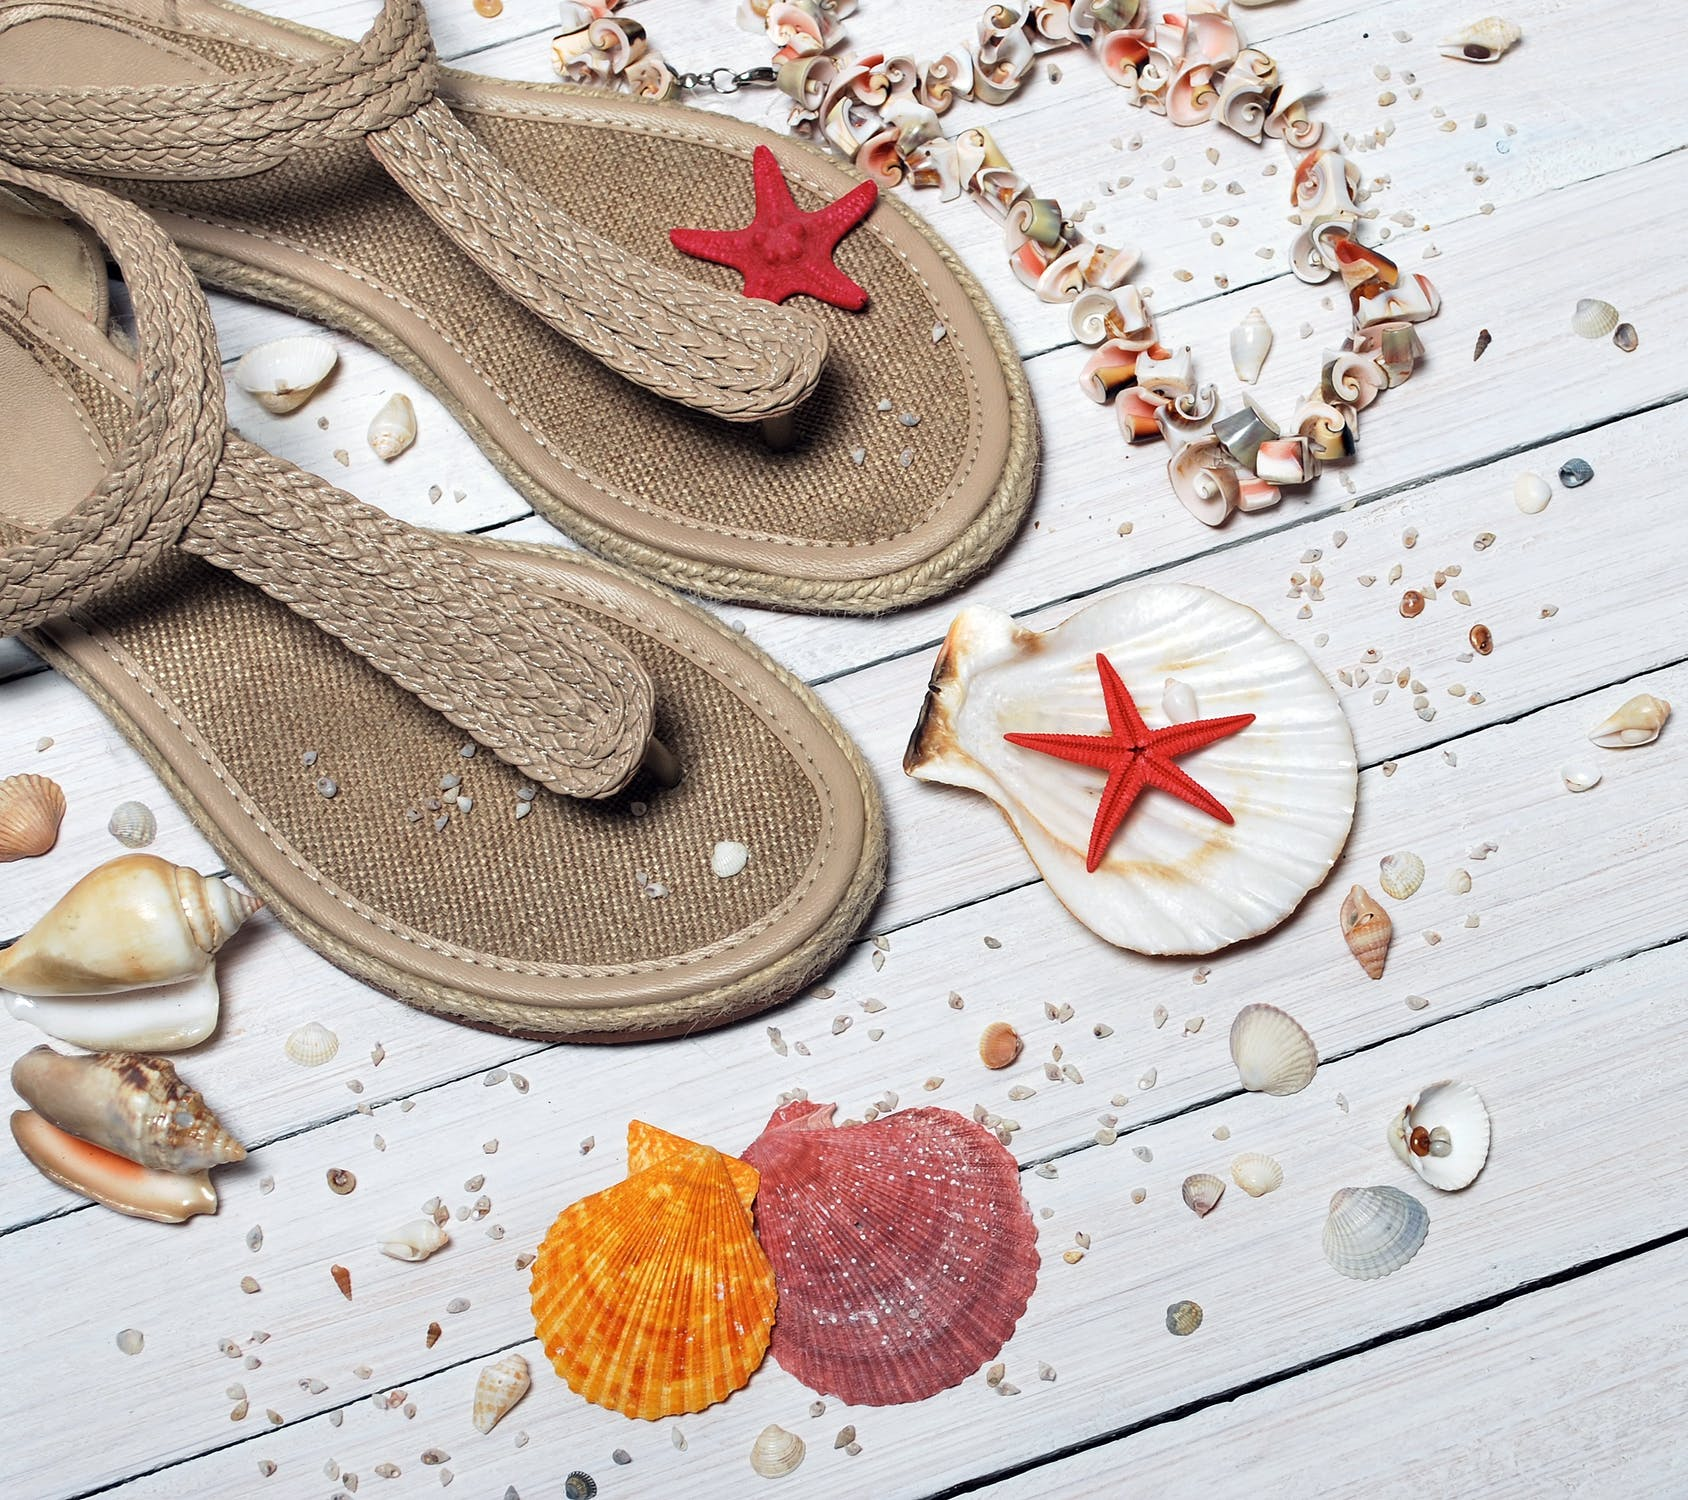 Trending Category - Sandals,Slides, Water Shoes